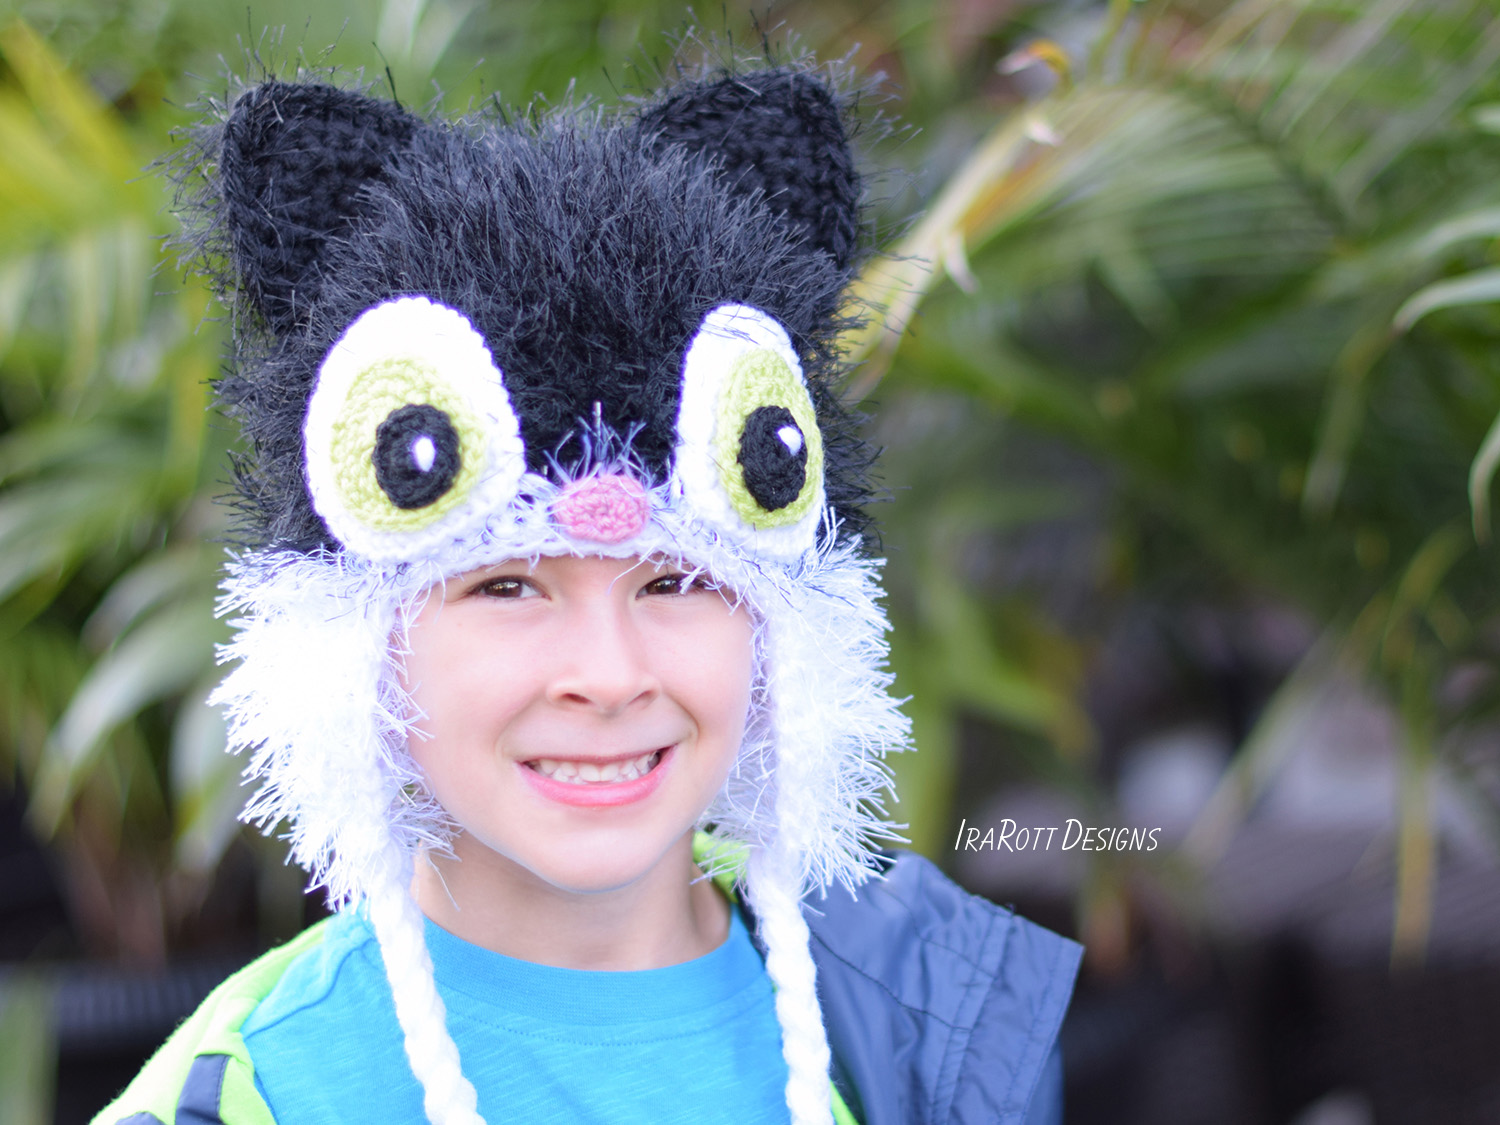 Crochet pattern PDF for making an adorable Sassy the kitty cat furry hat with hearts